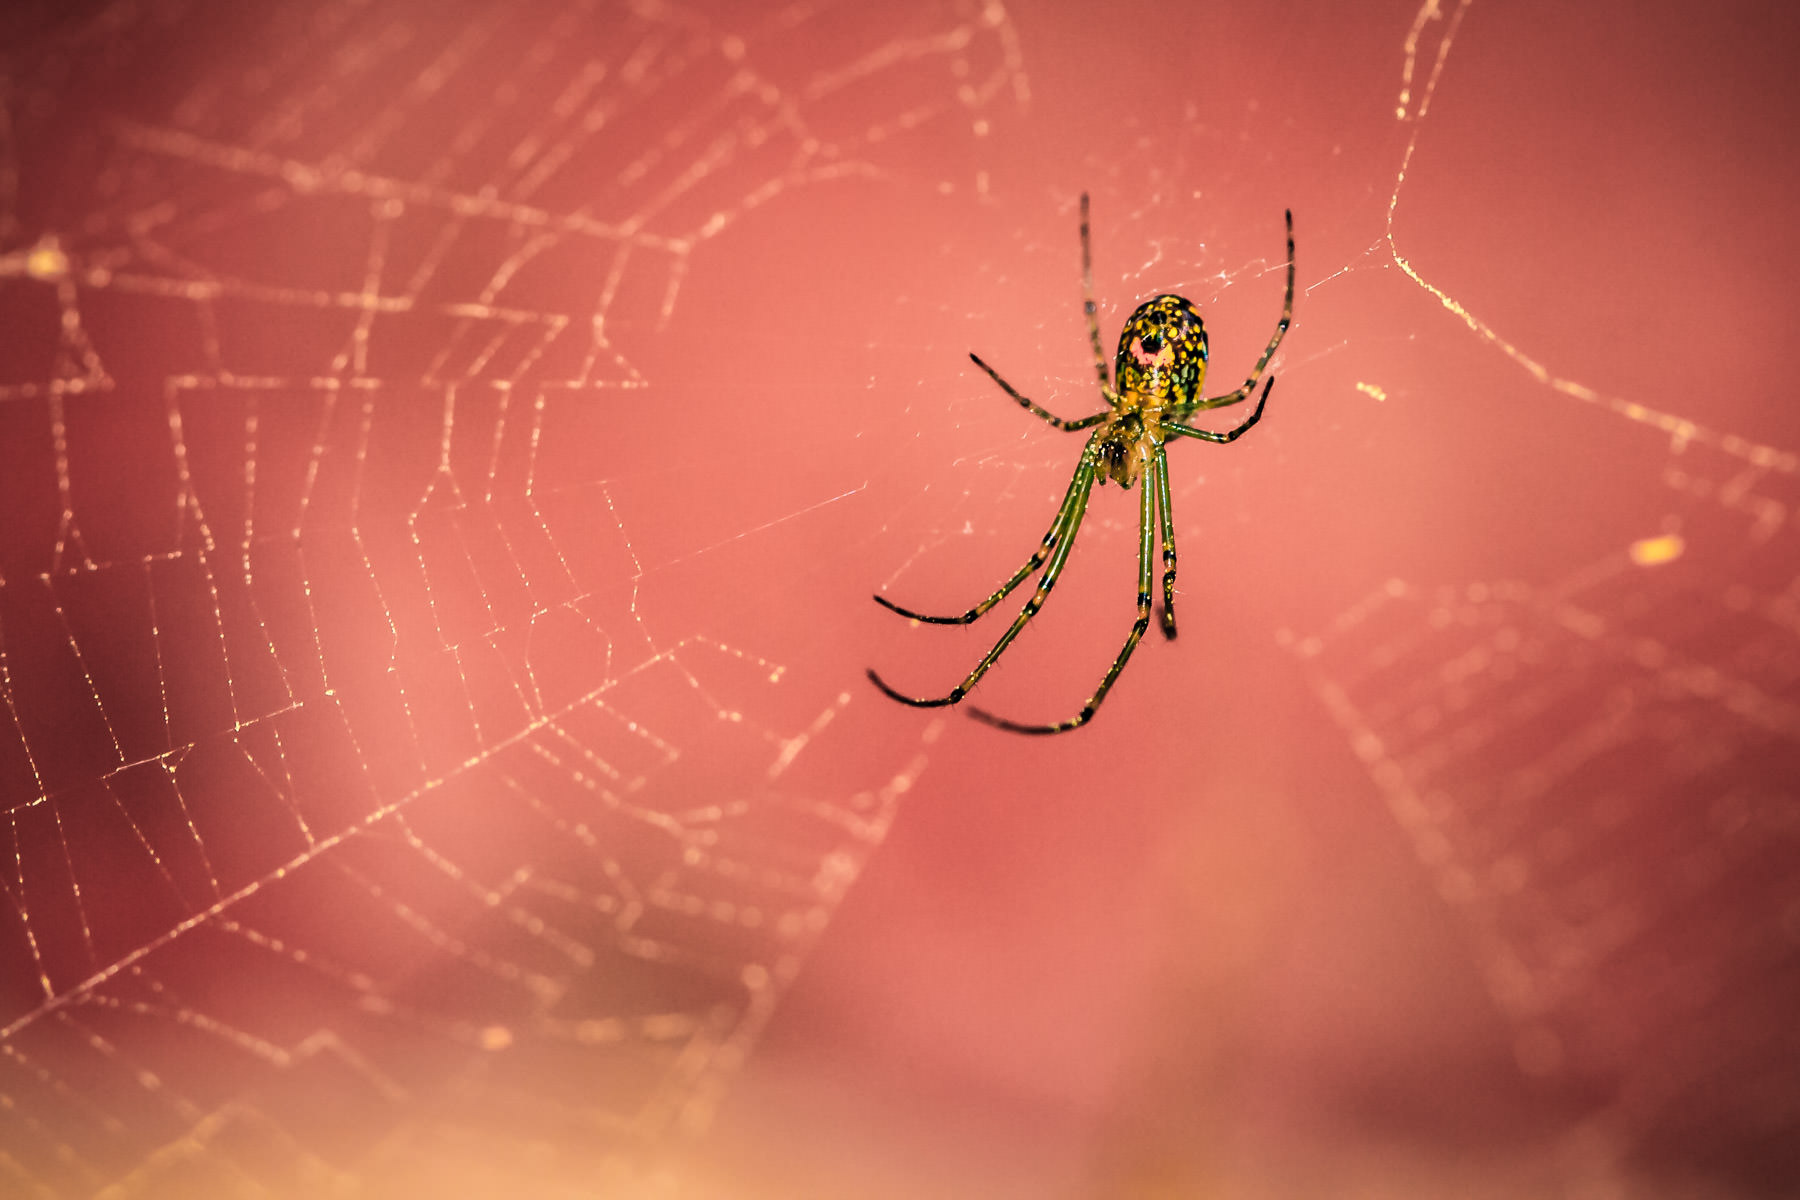 This spider sits in its web, awaiting prey to feast upon.